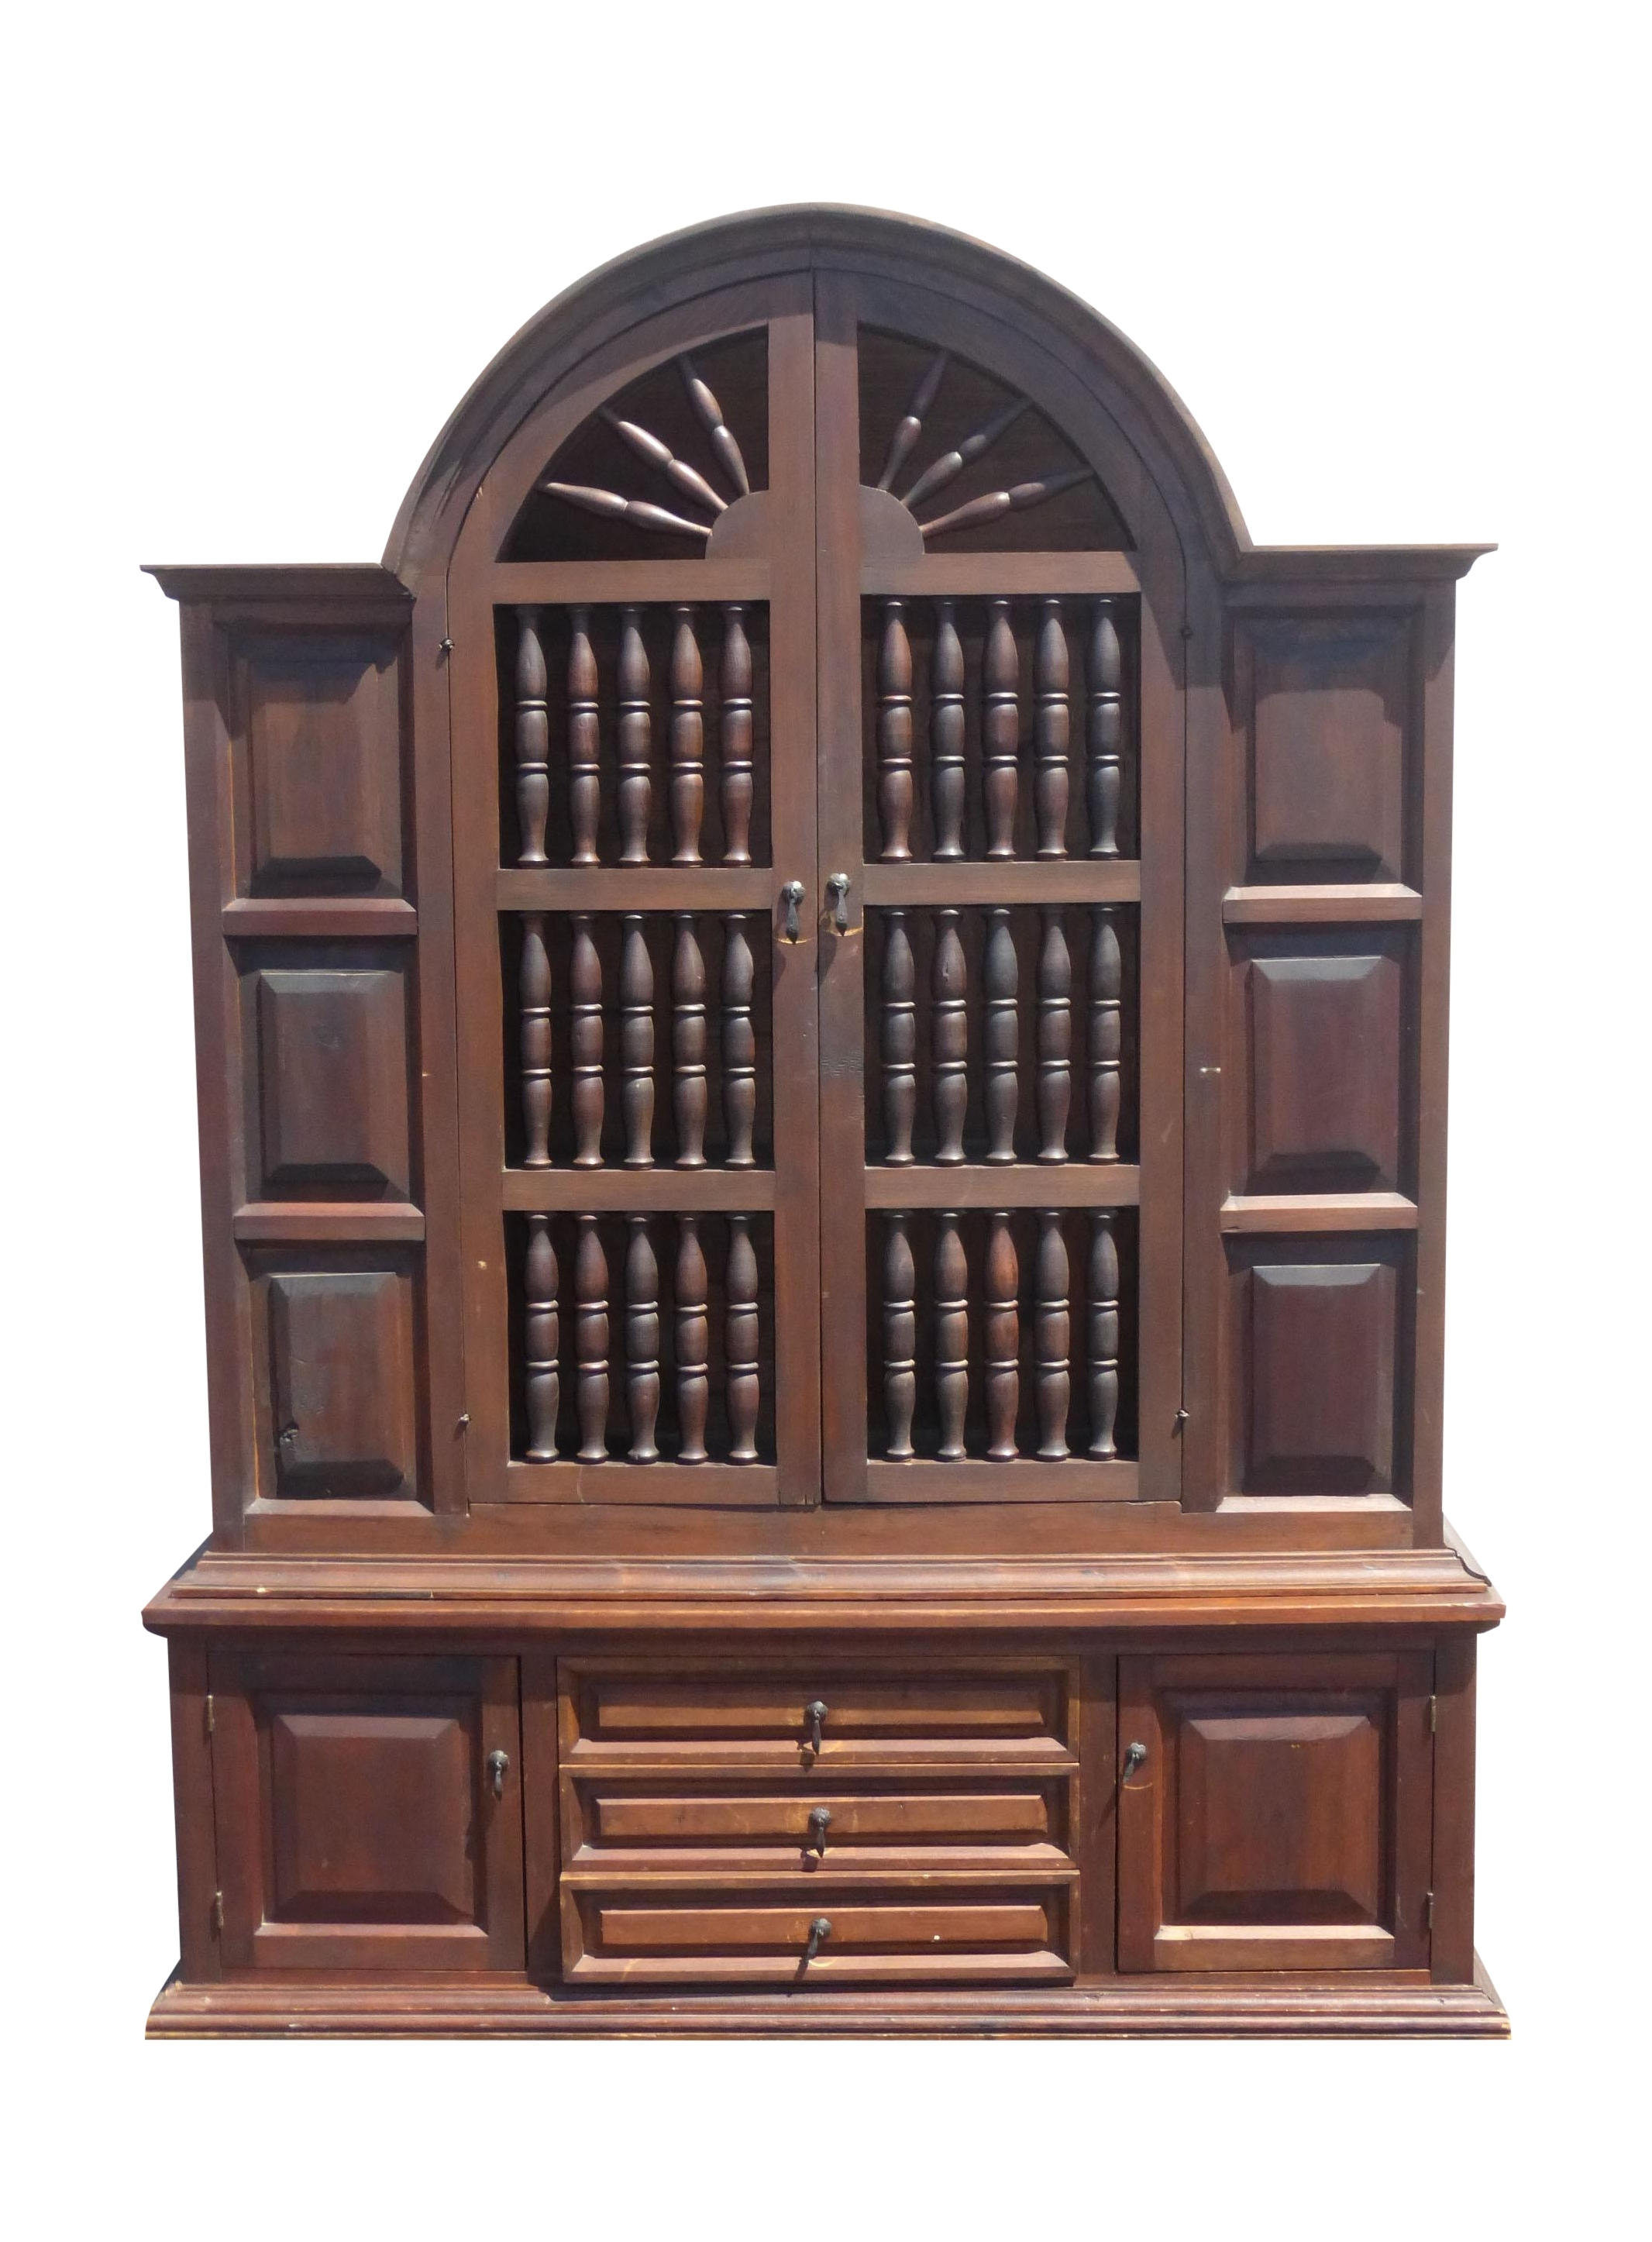 Furniture Home: Furniture Home Awesome Bookcase In Spanish For For Most Recent Traditional Bookcases (View 14 of 15)